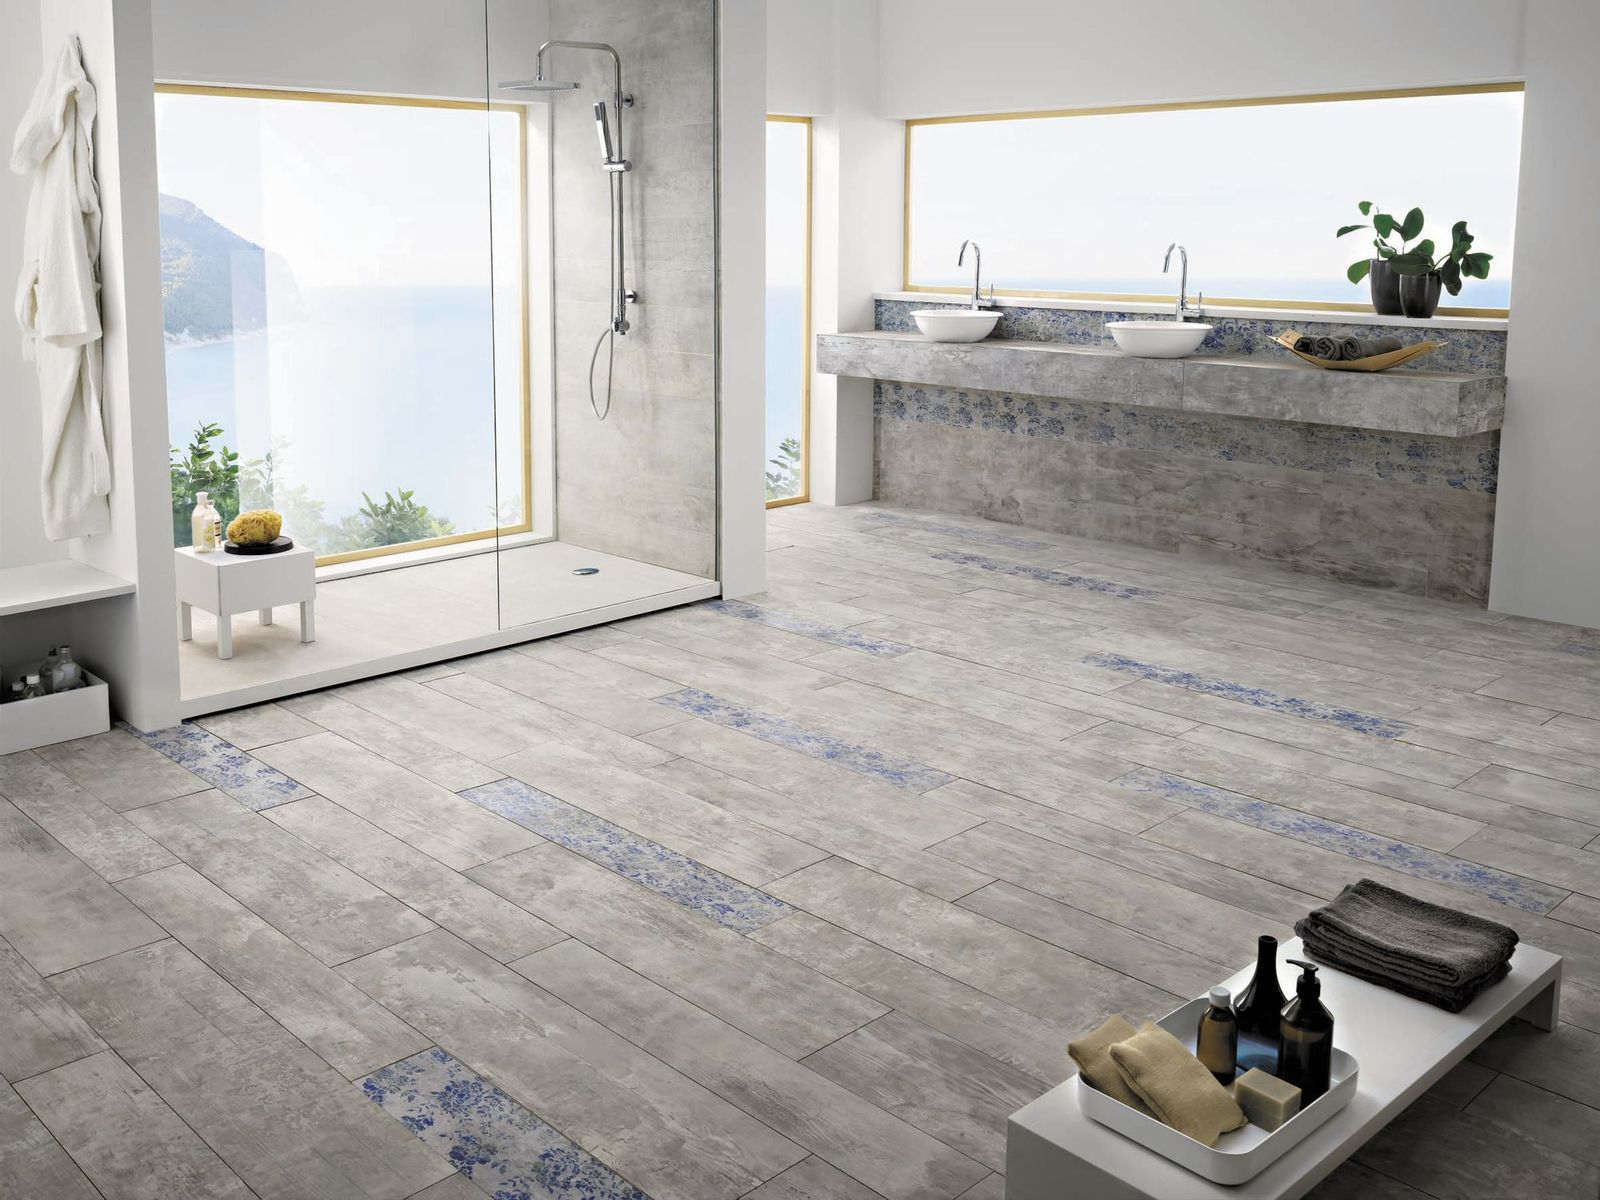 30 magnificent ideas and pictures decorative bathroom floor tile archiexpo dailygadgetfo Gallery